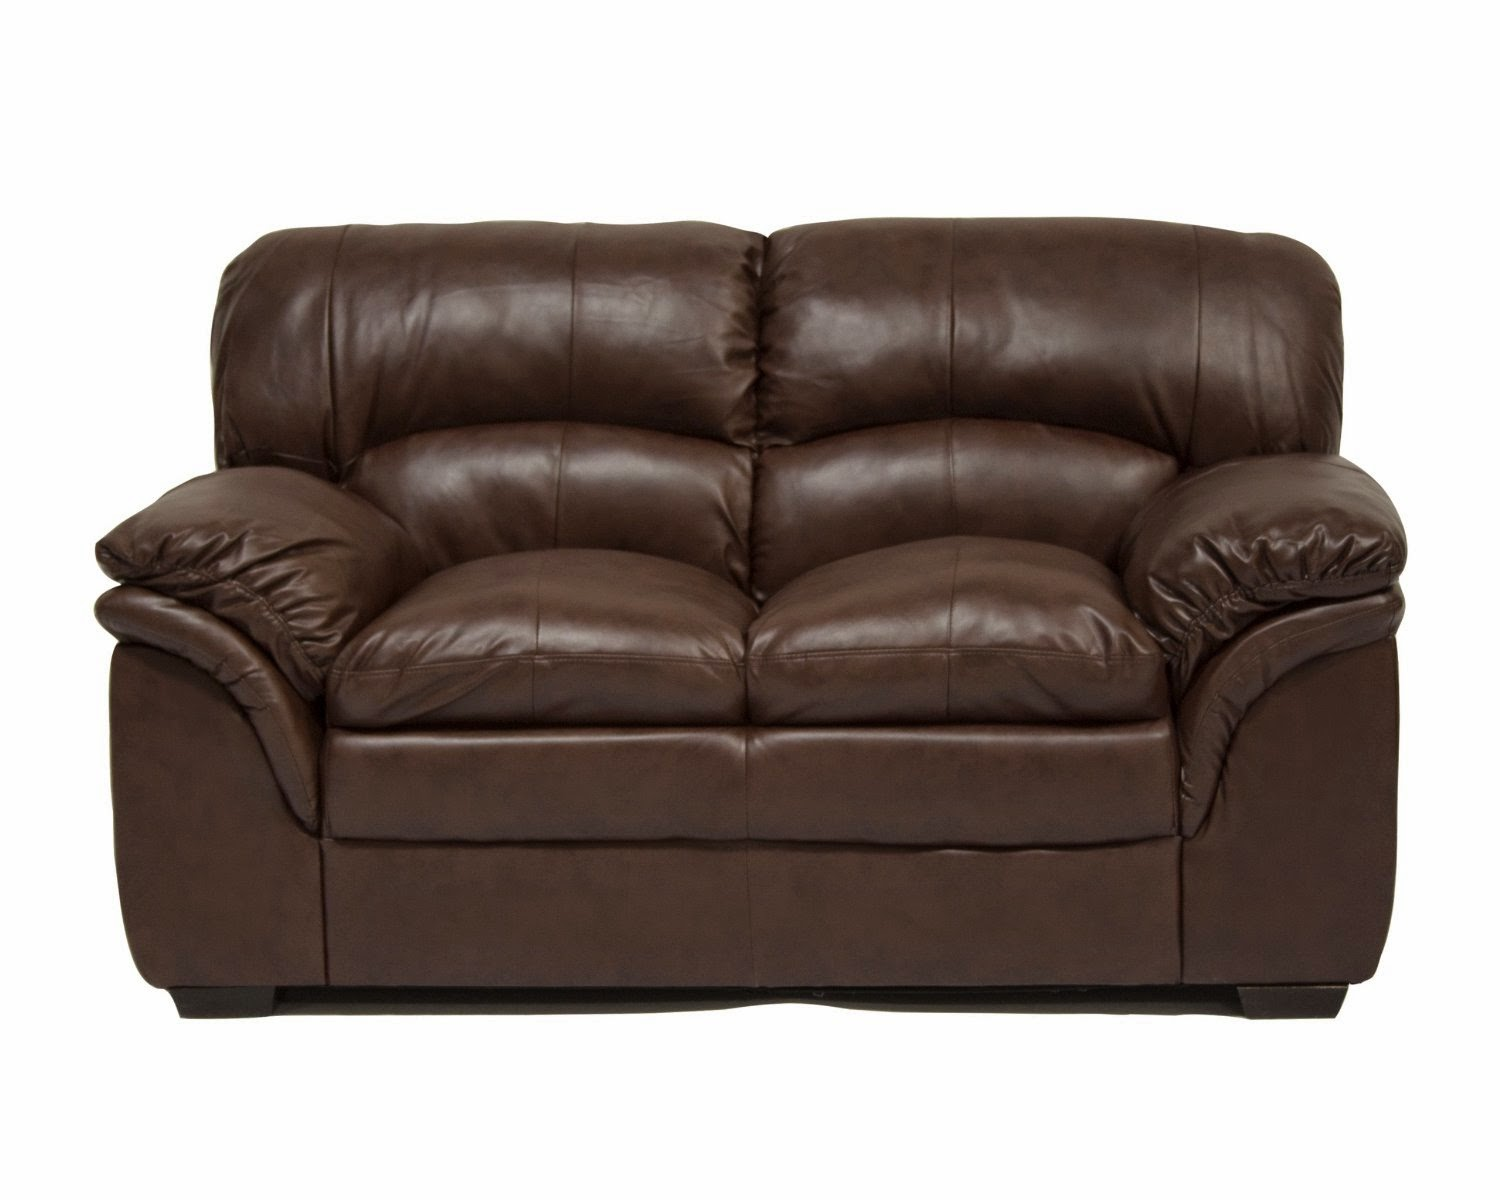 Ac Pacific Brown Two Seater Reclining Leather Sofas